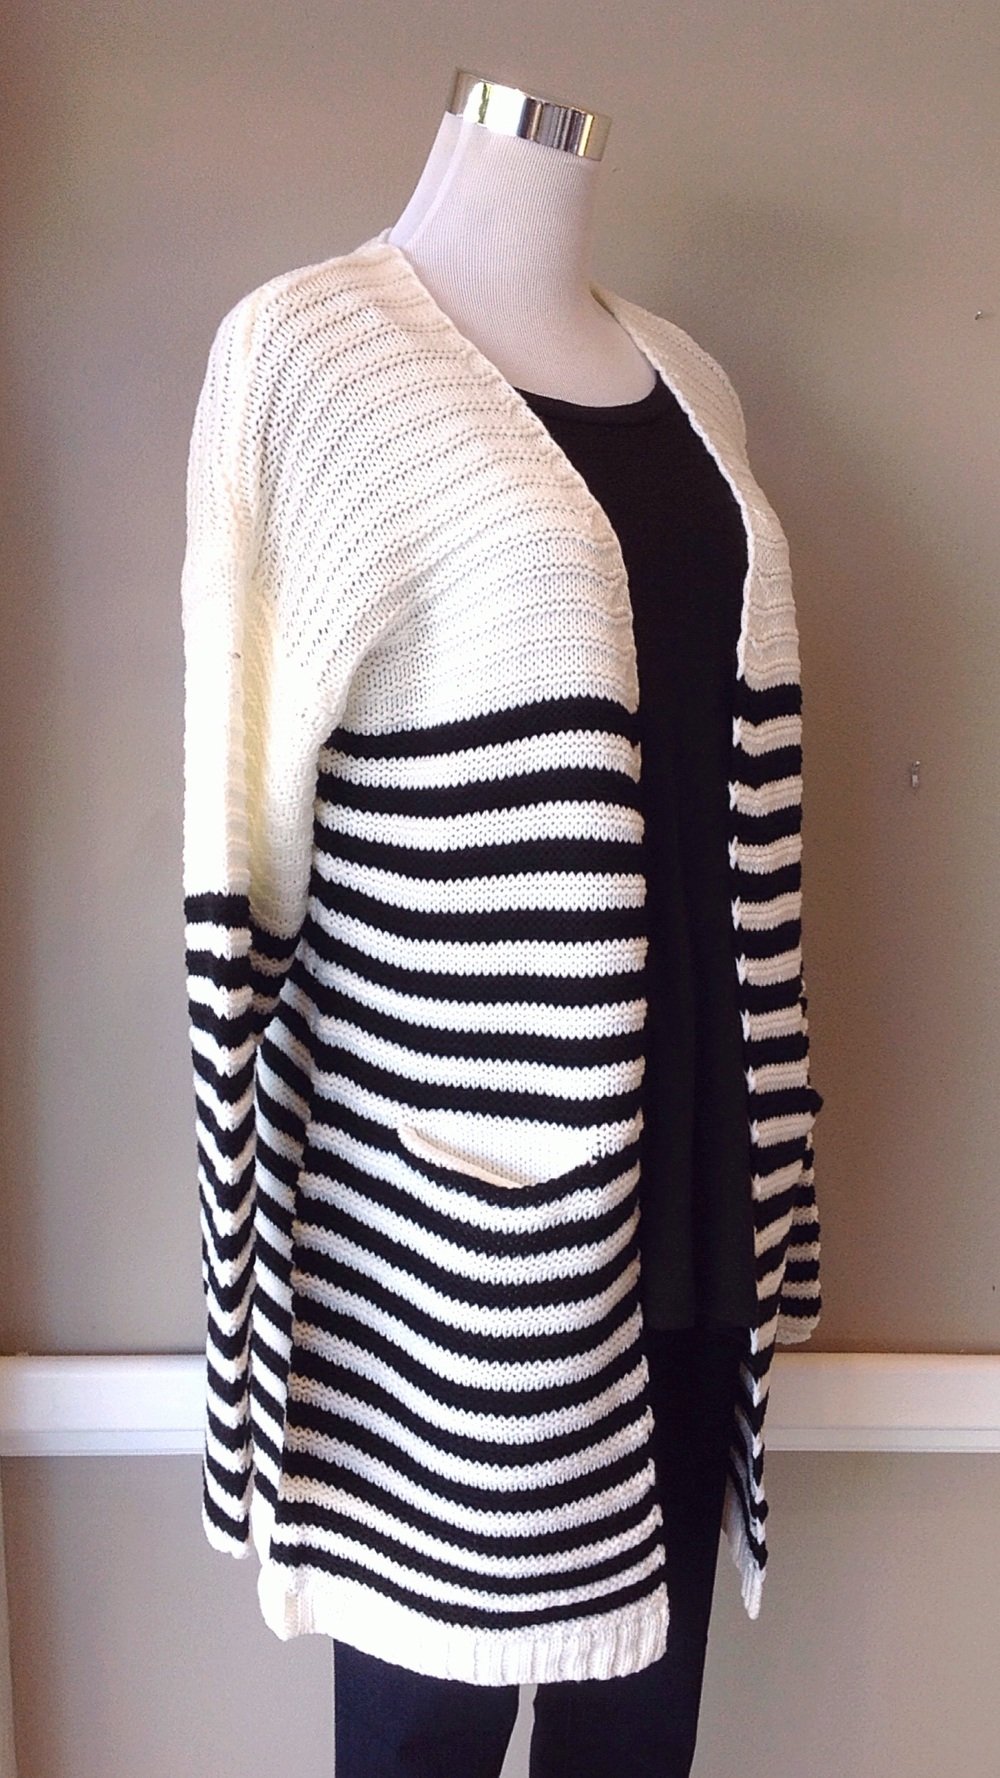 Chunky knit striped cardigan with pockets in black and ivory, $38